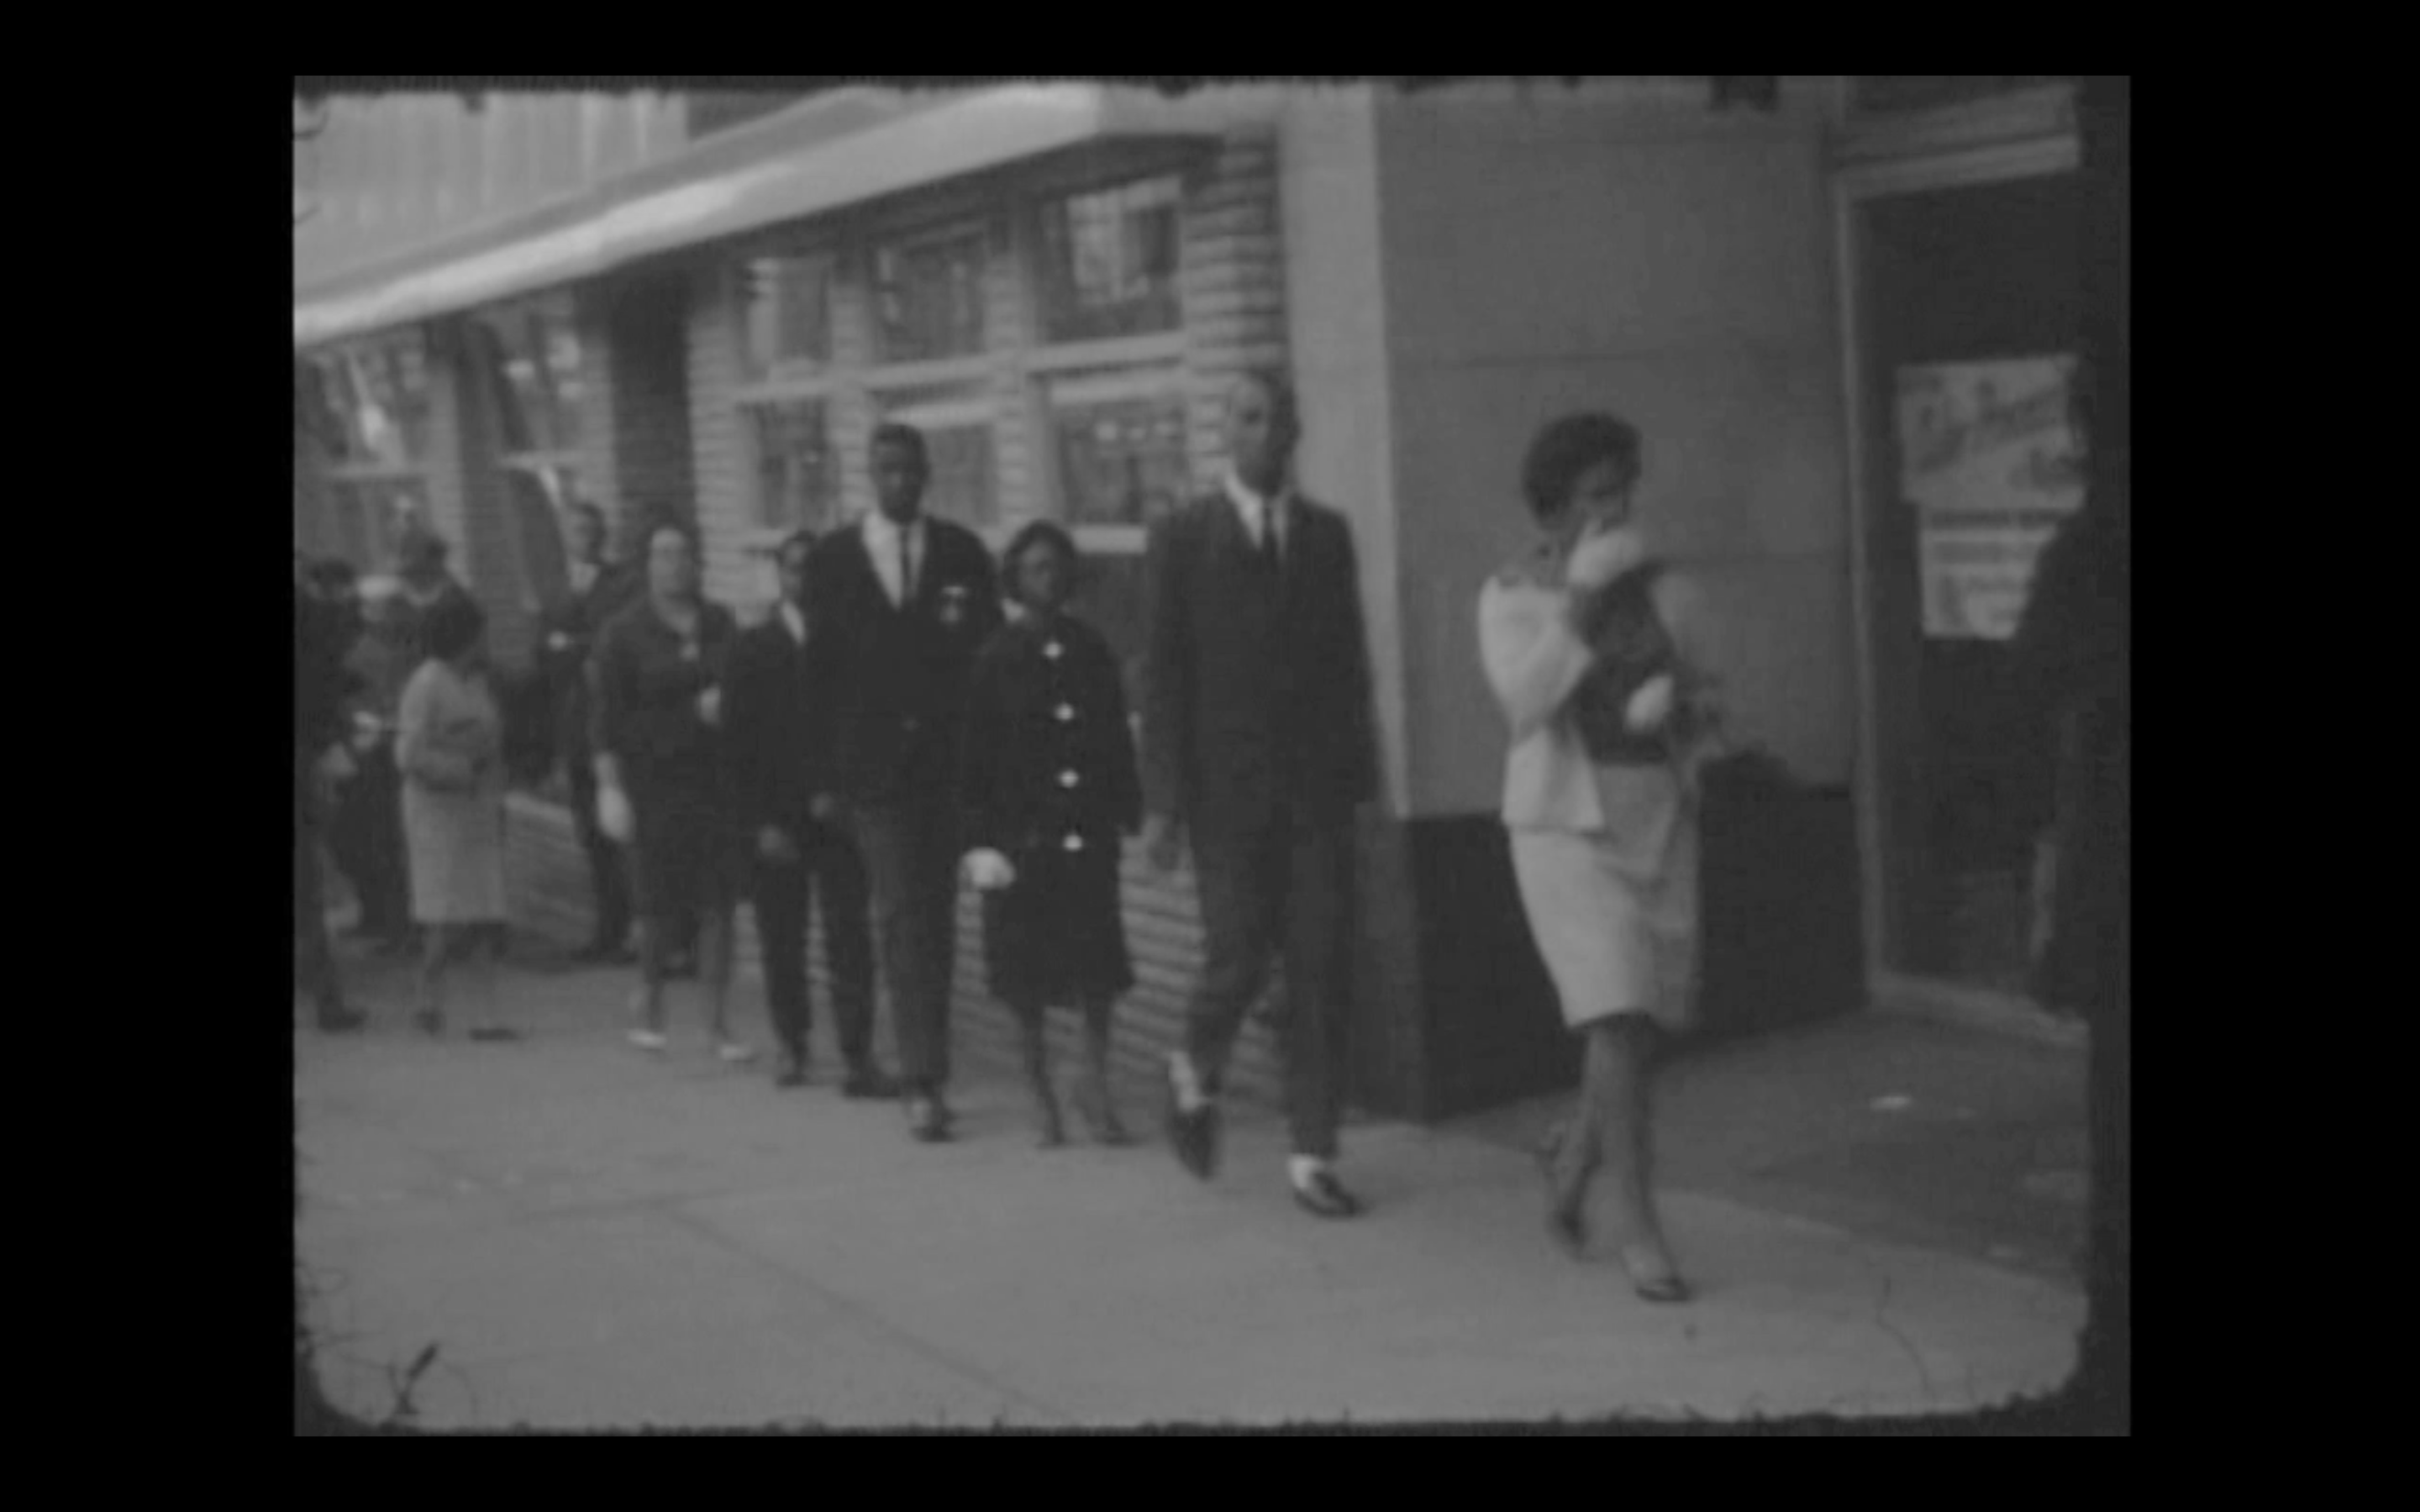 The picketing taking place outside of Bailey's on May 1, 1963.